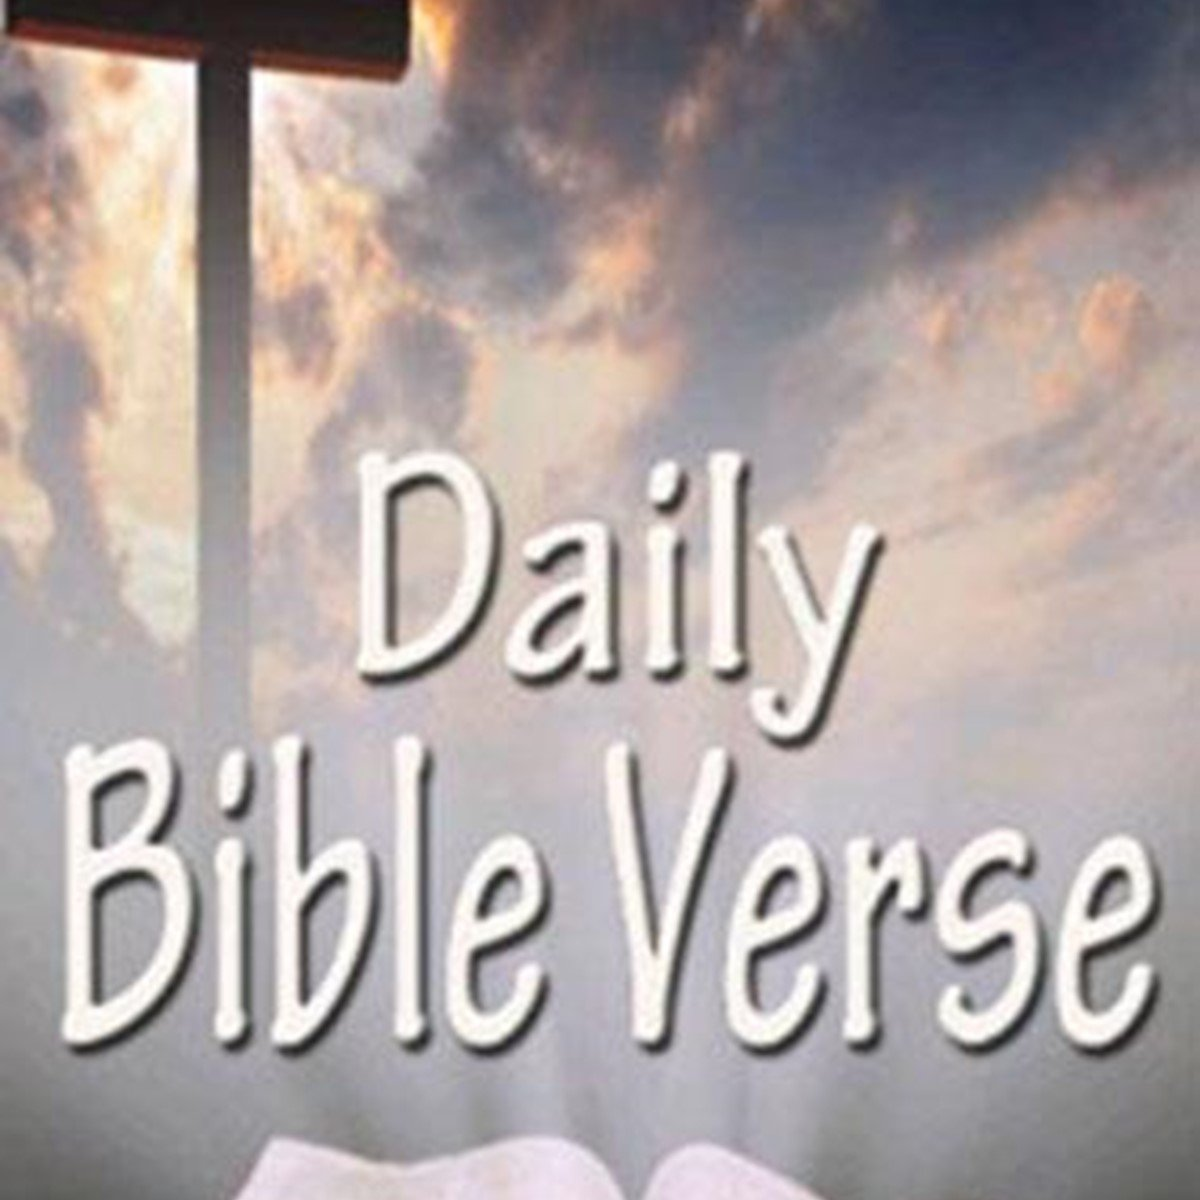 Daily Bible Verse Alternatives and Similar Apps